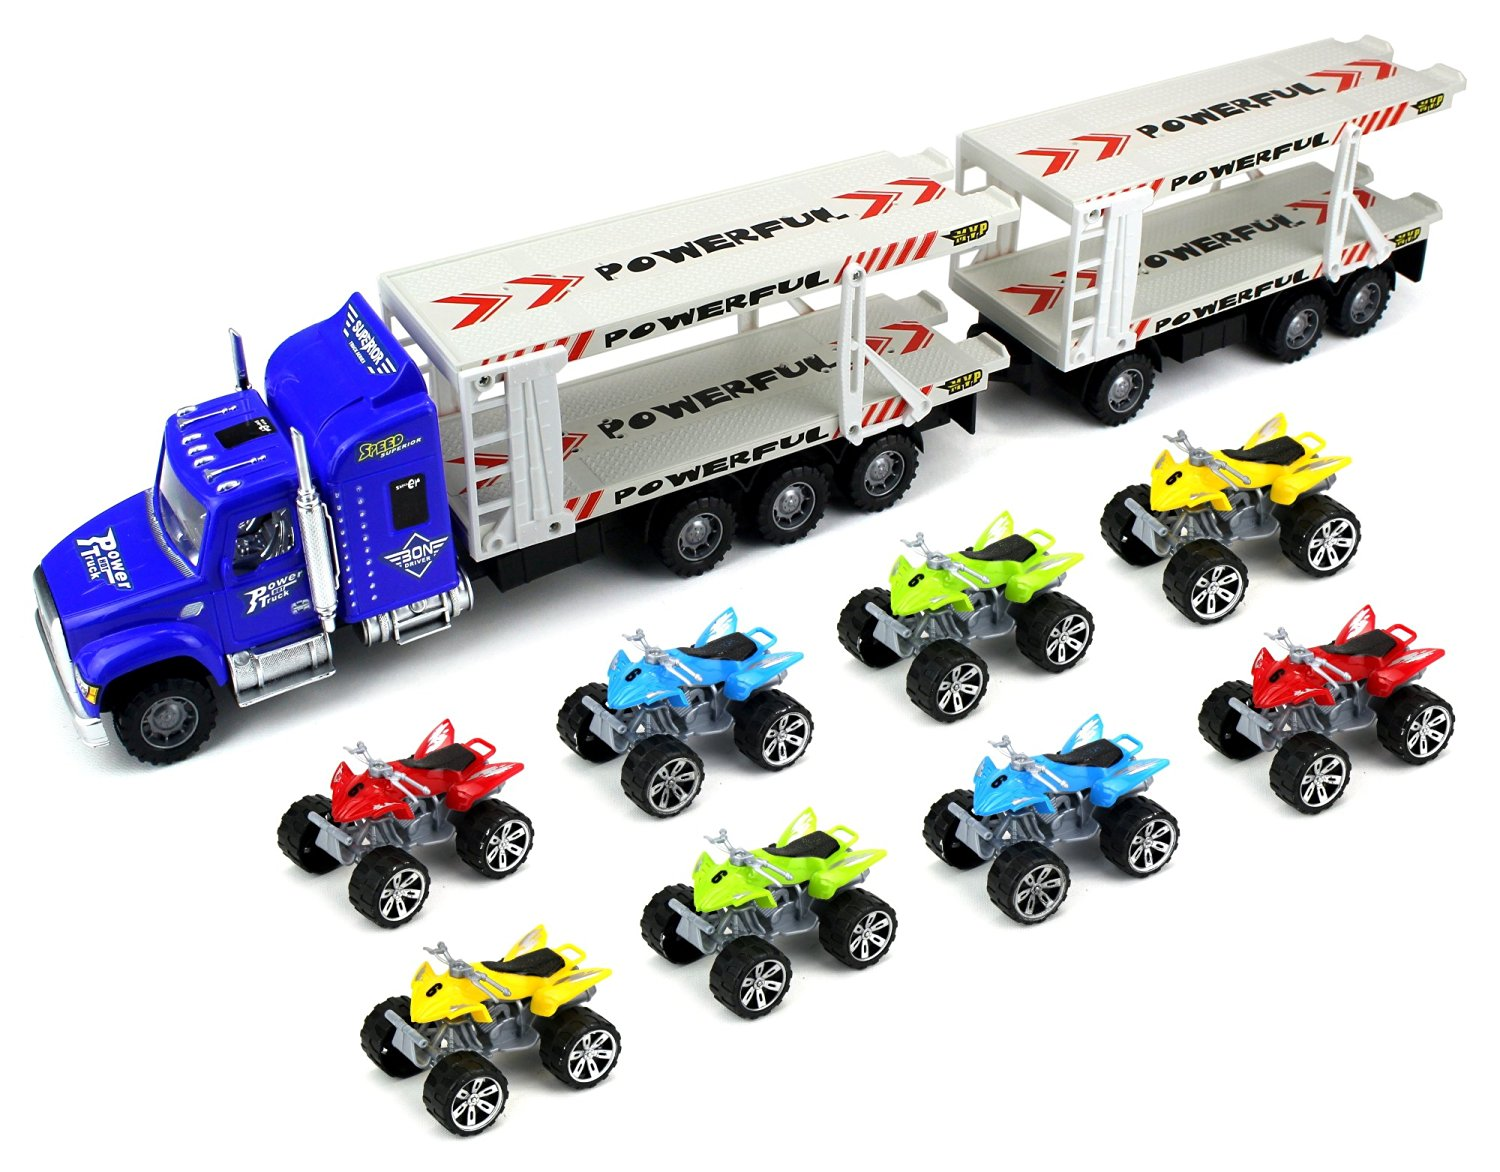 Power ATV Trailer Children's Friction Toy Transporter Truck Ready To Run 1:32 Scale w  8... by Velocity Toys